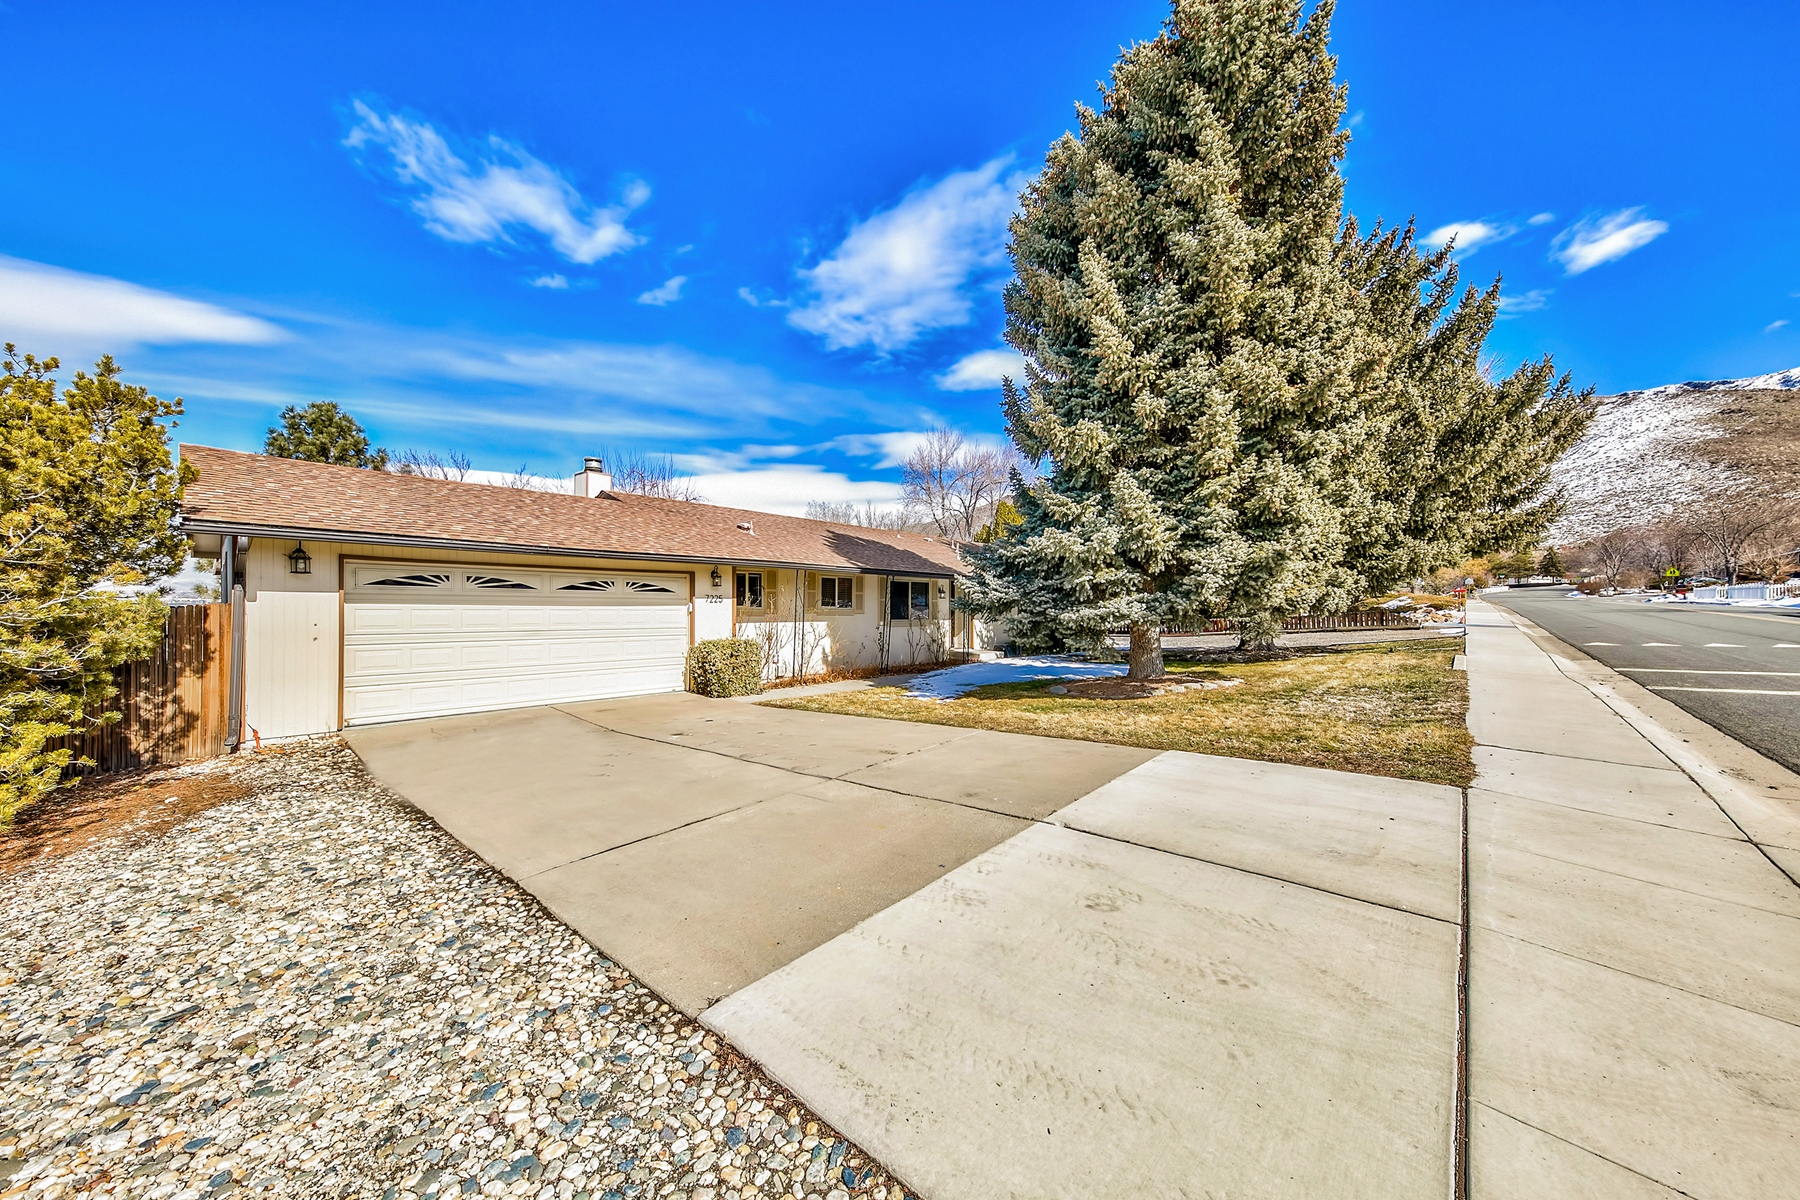 Single Family Home for Active at 7225 Pembroke Drive, Reno, Nevada 7225 Pembroke Drive Reno, Nevada 89511 United States